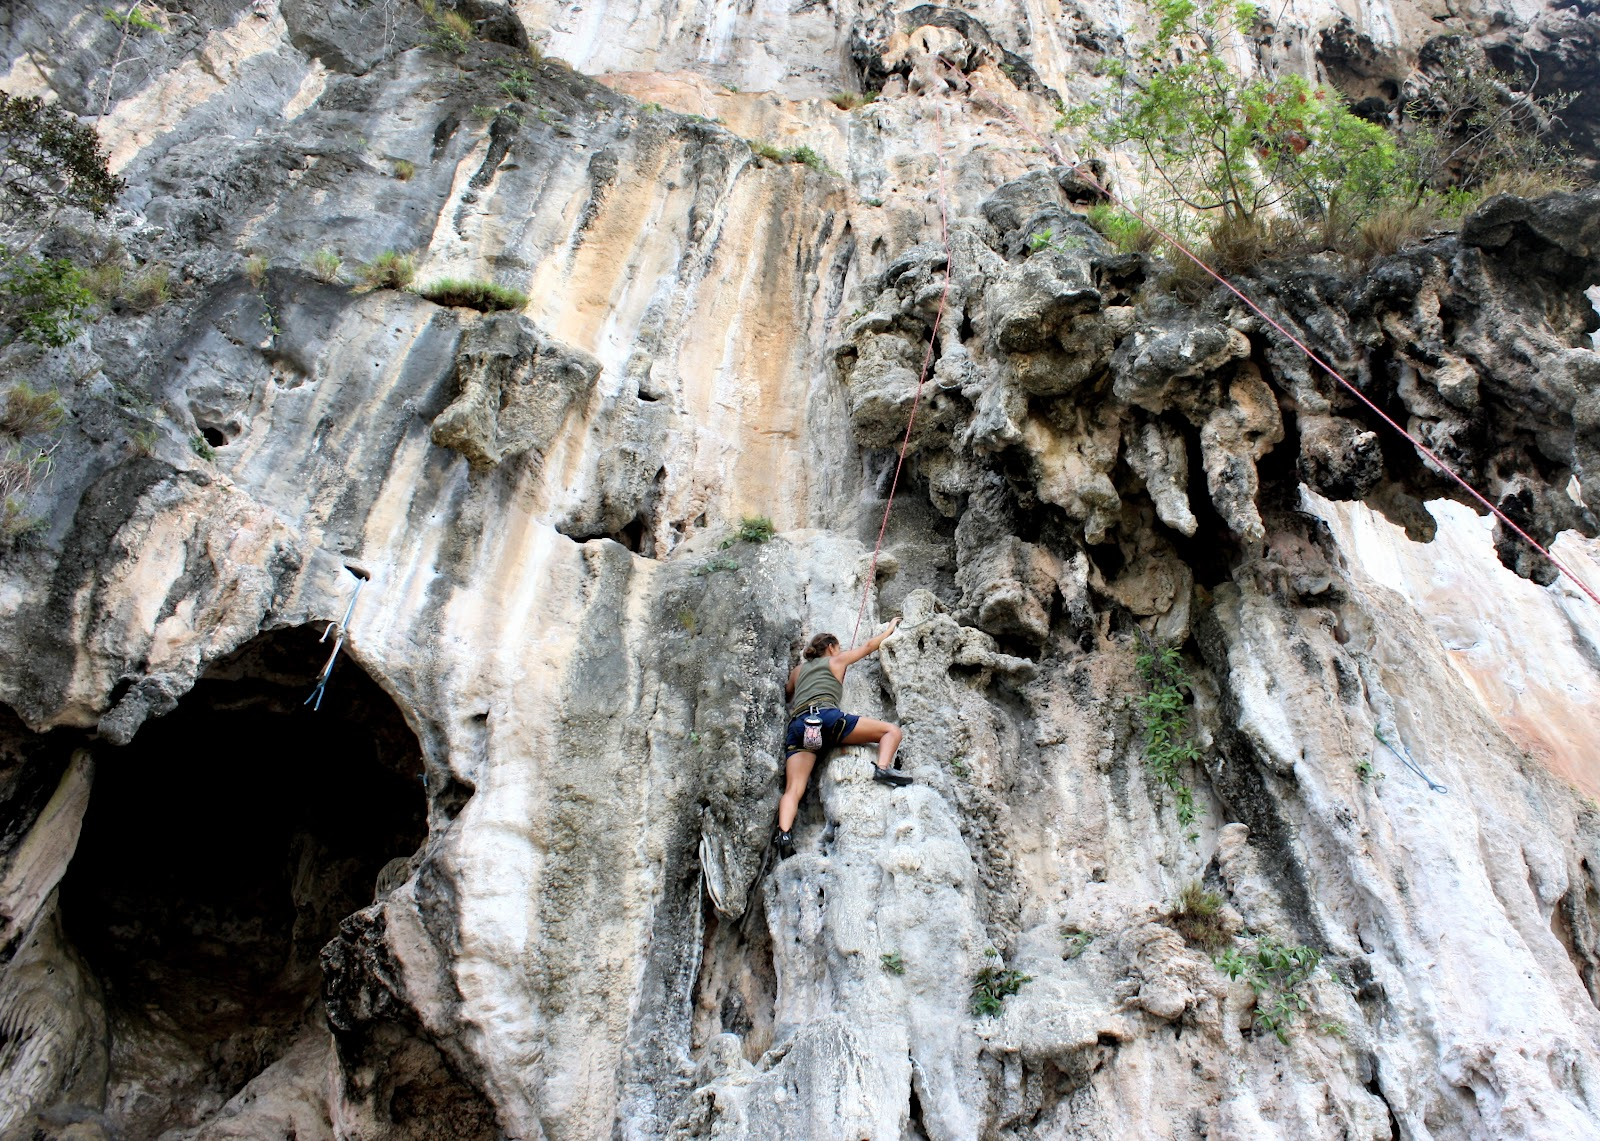 Rock Climbing Courses at Railay Beach by King Climbers